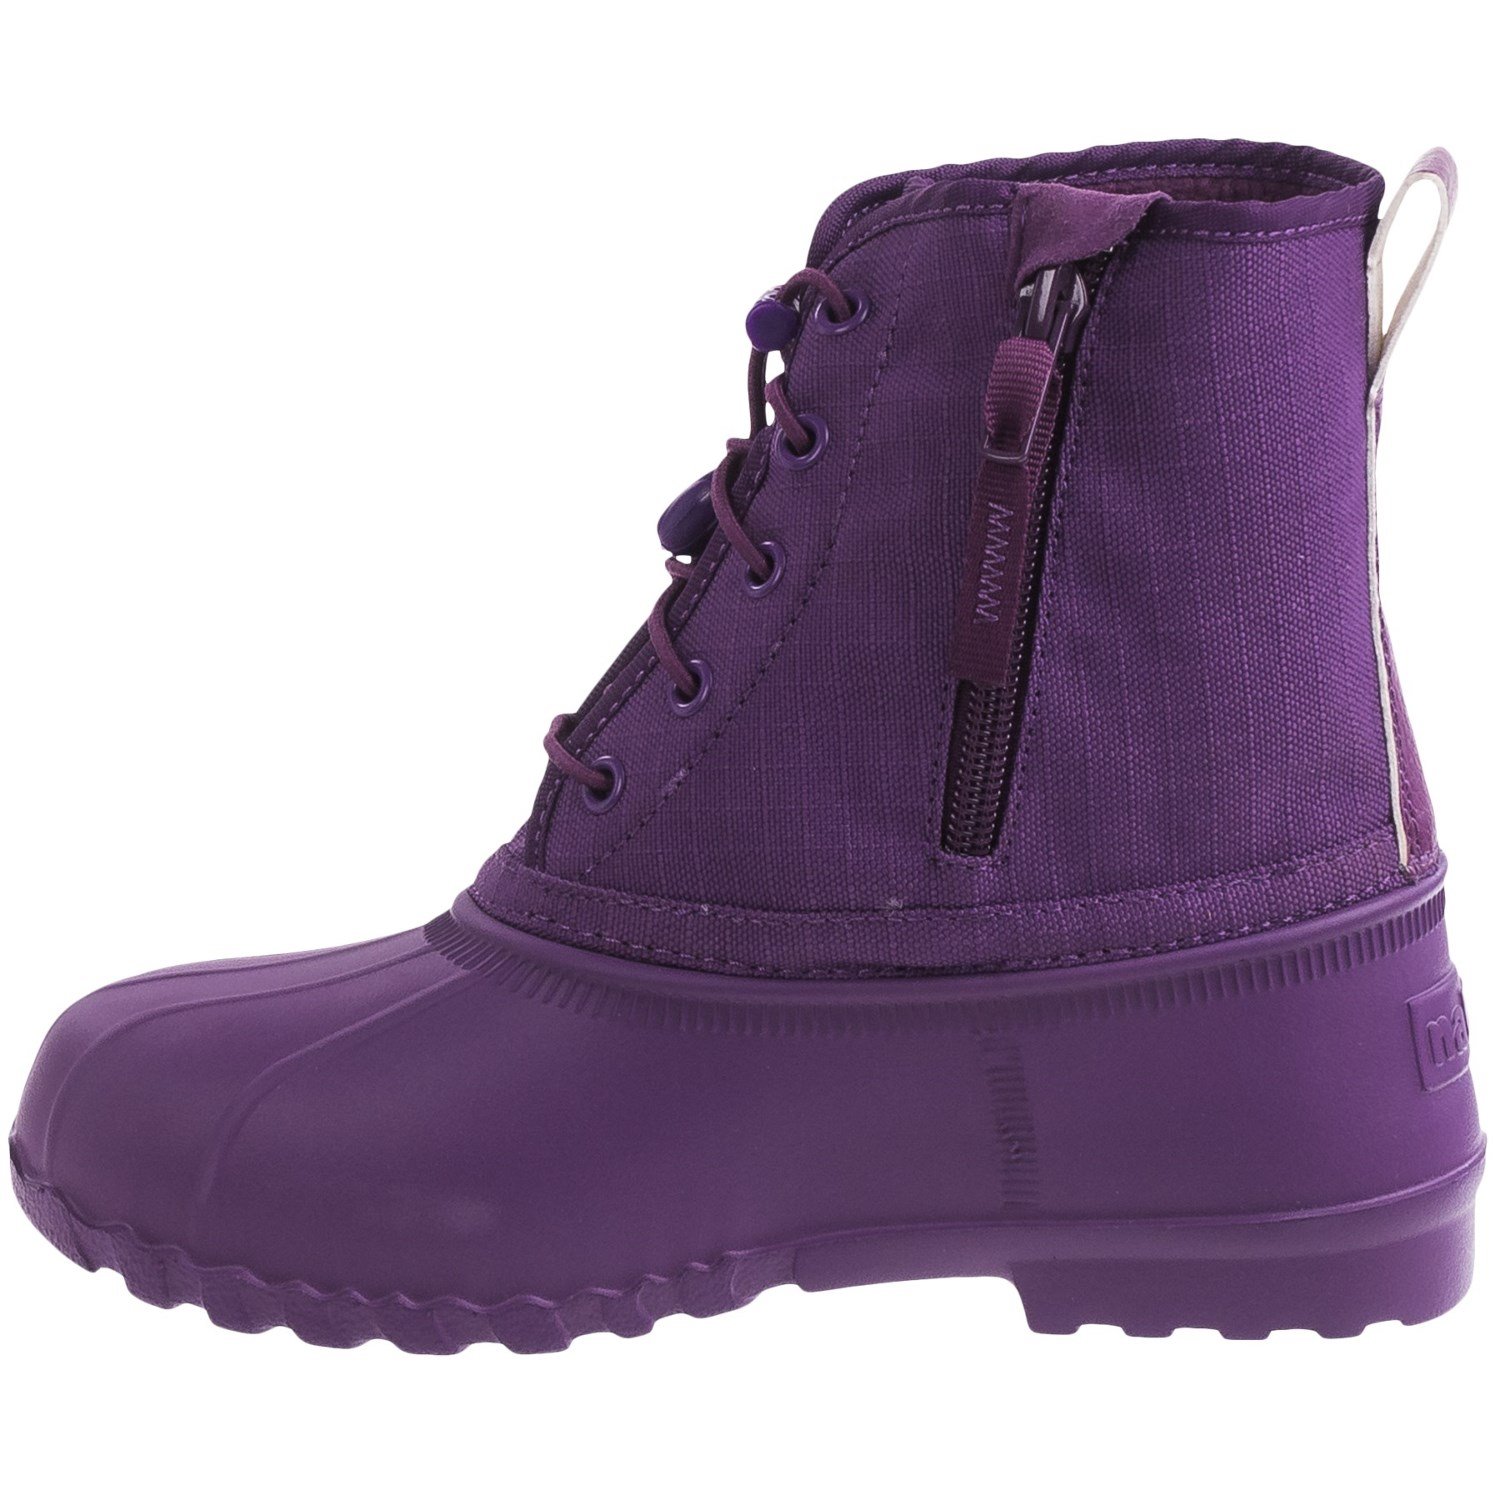 Junior Rain Boots - Boot Hto